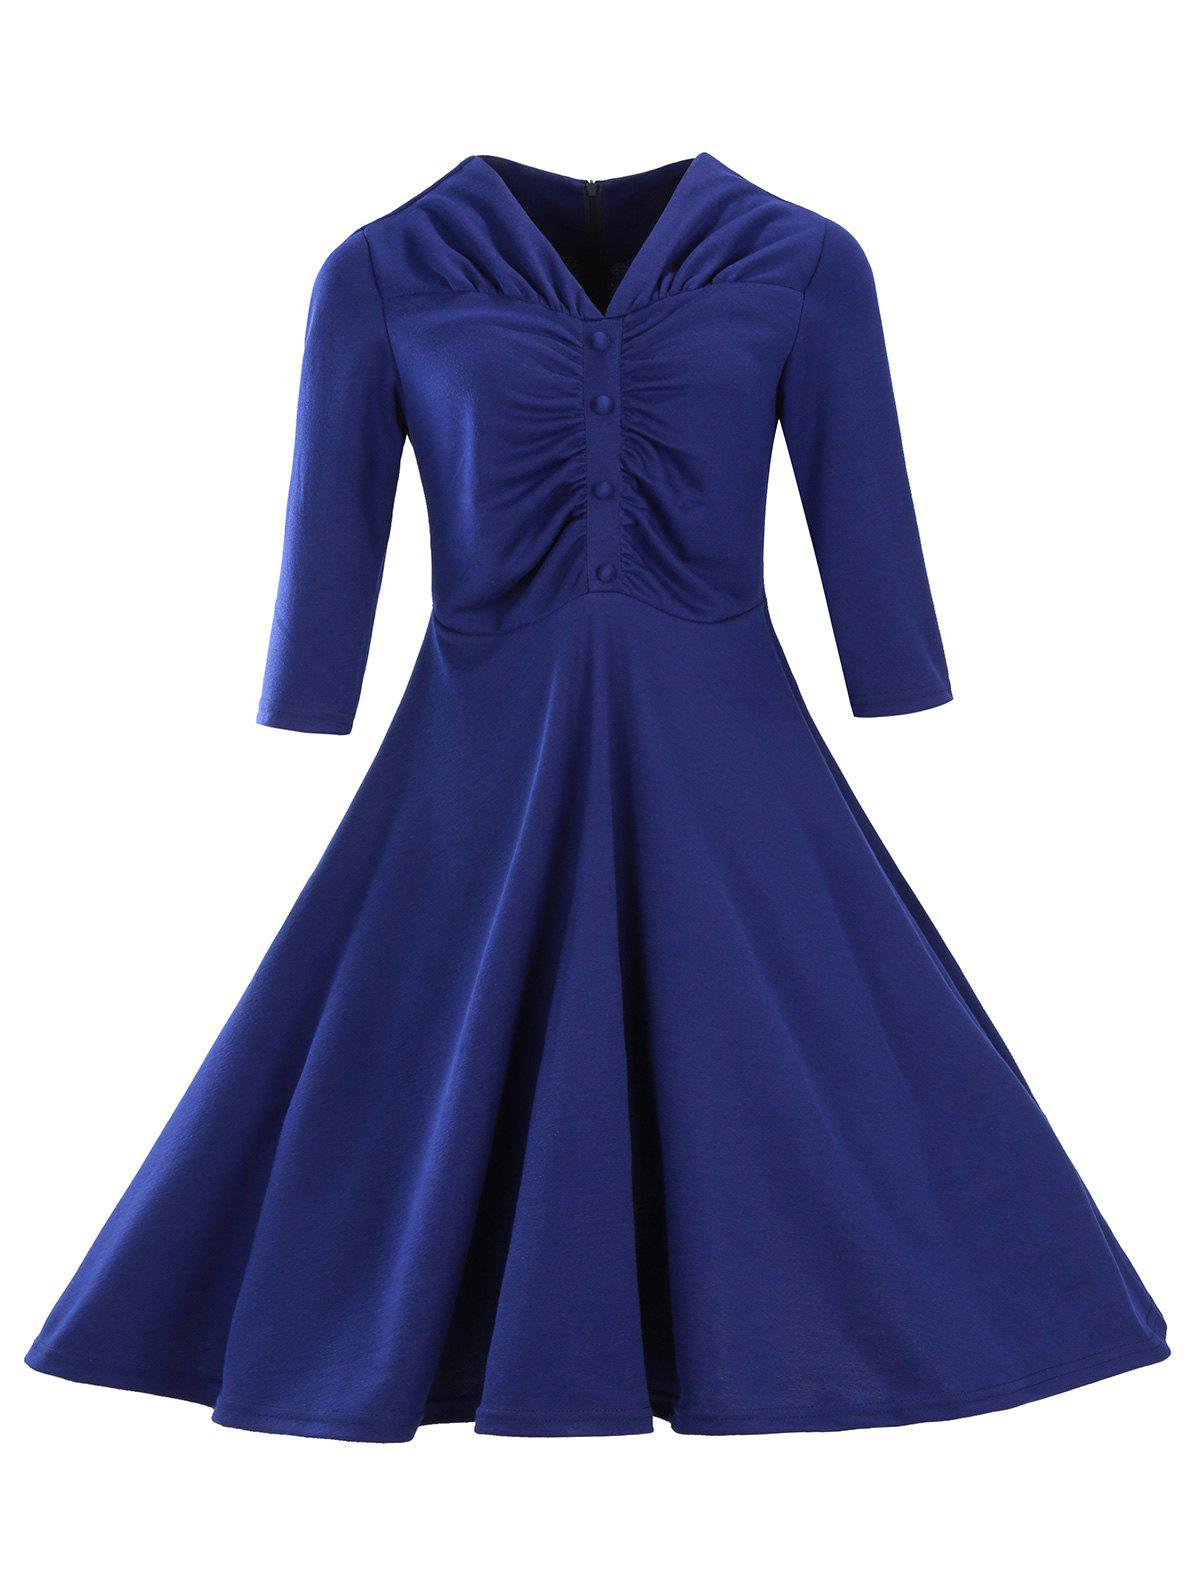 Retro Ruched Button Full Swing Midi Dress retro ruched swing pin up dress